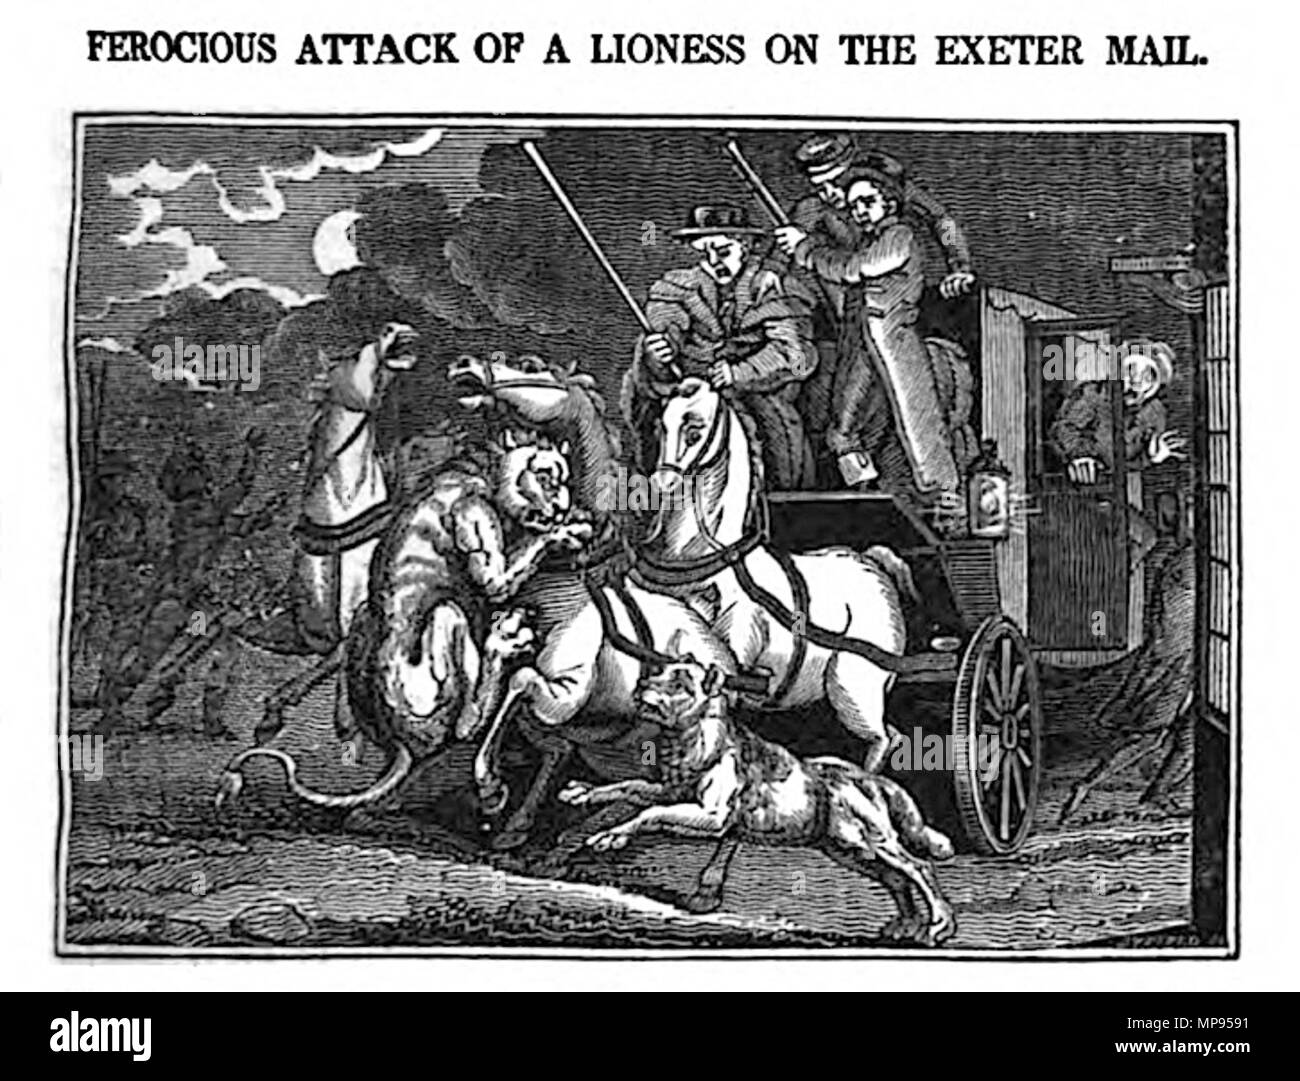 . English: Ferocious attack of a lioness on the Exeter Mail [The lion attack occurred on the night of October 20, 1816, as the mail coach - nicknamed Quicksilver due to its speed - travelled from Exeter to the capital.] . 1825. John Byfield 812 Lion attacking the Exeter mail coach in 1816 - Stock Image